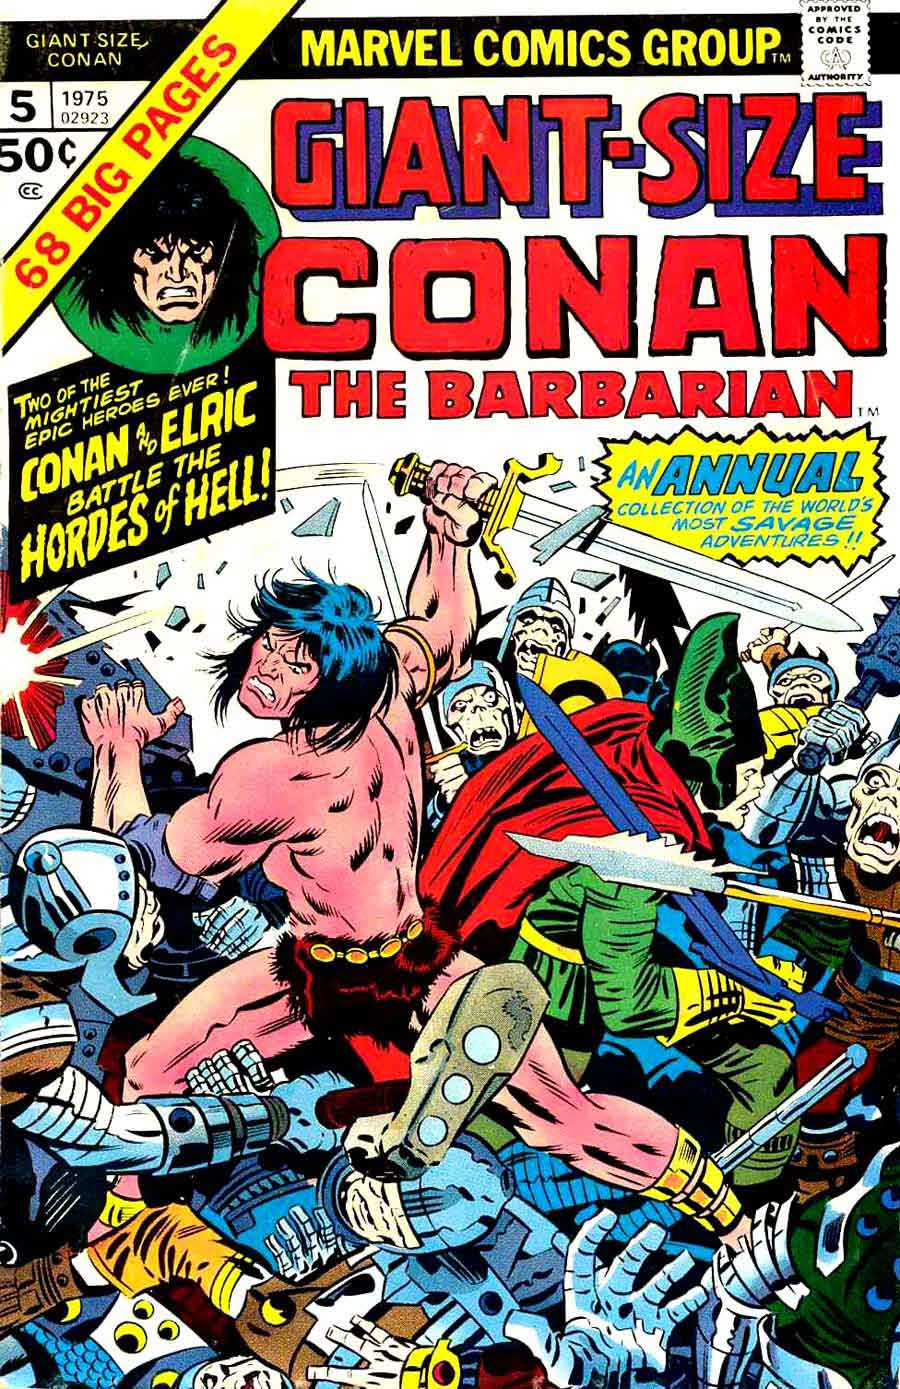 Giant-size Conan the Barbarian v1 # marvel comic book cover art by Jack Kirby